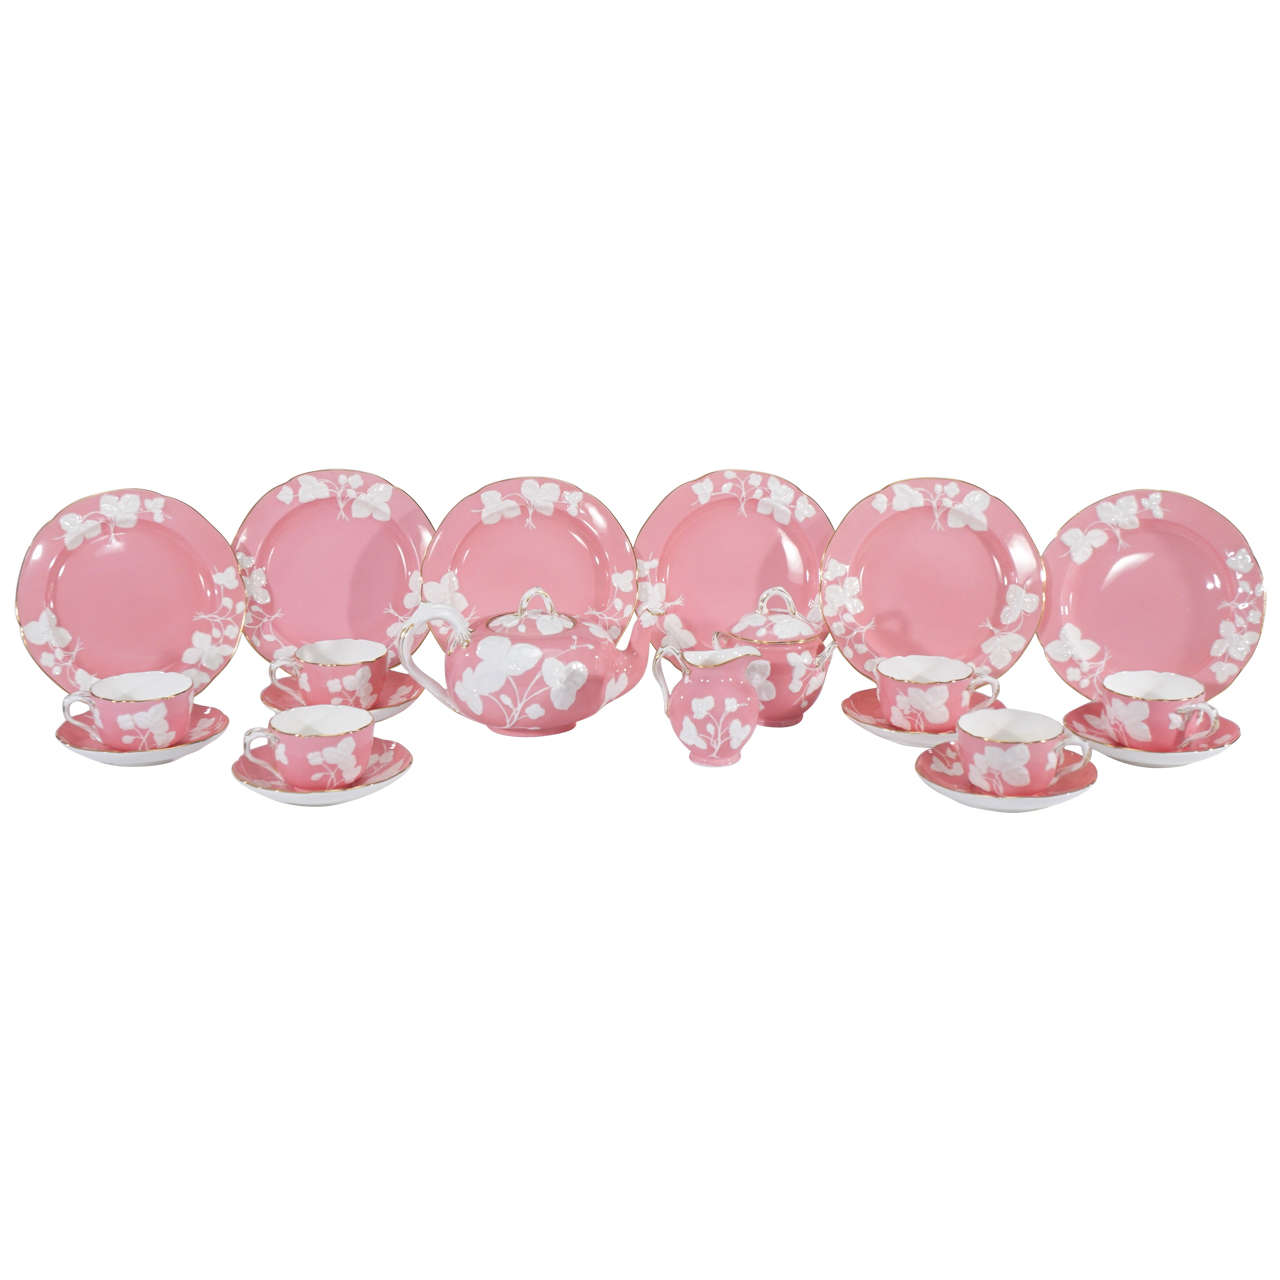 Mintons Pink and Blanc de Chine Dessert Set for Six Raised Leaf and Gold